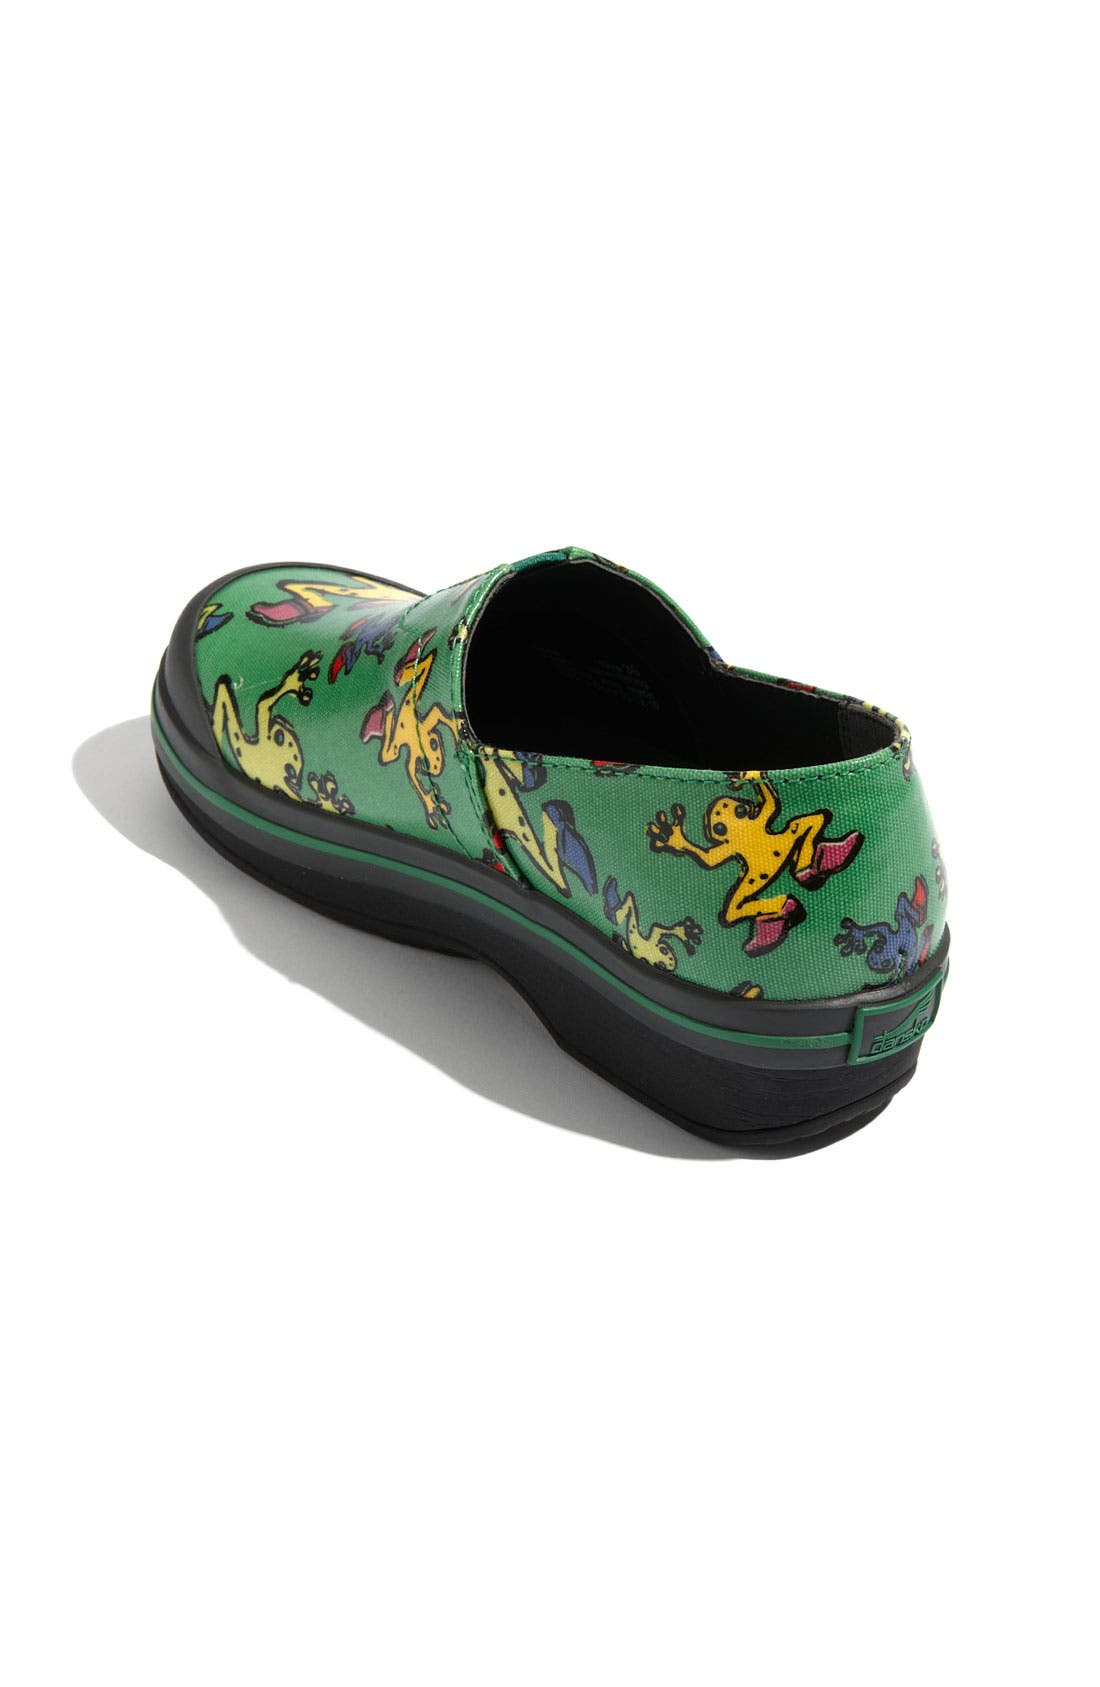 Alternate Image 2  - Dansko 'Vesta' Rain Shoe (Toddler & Little Kid)